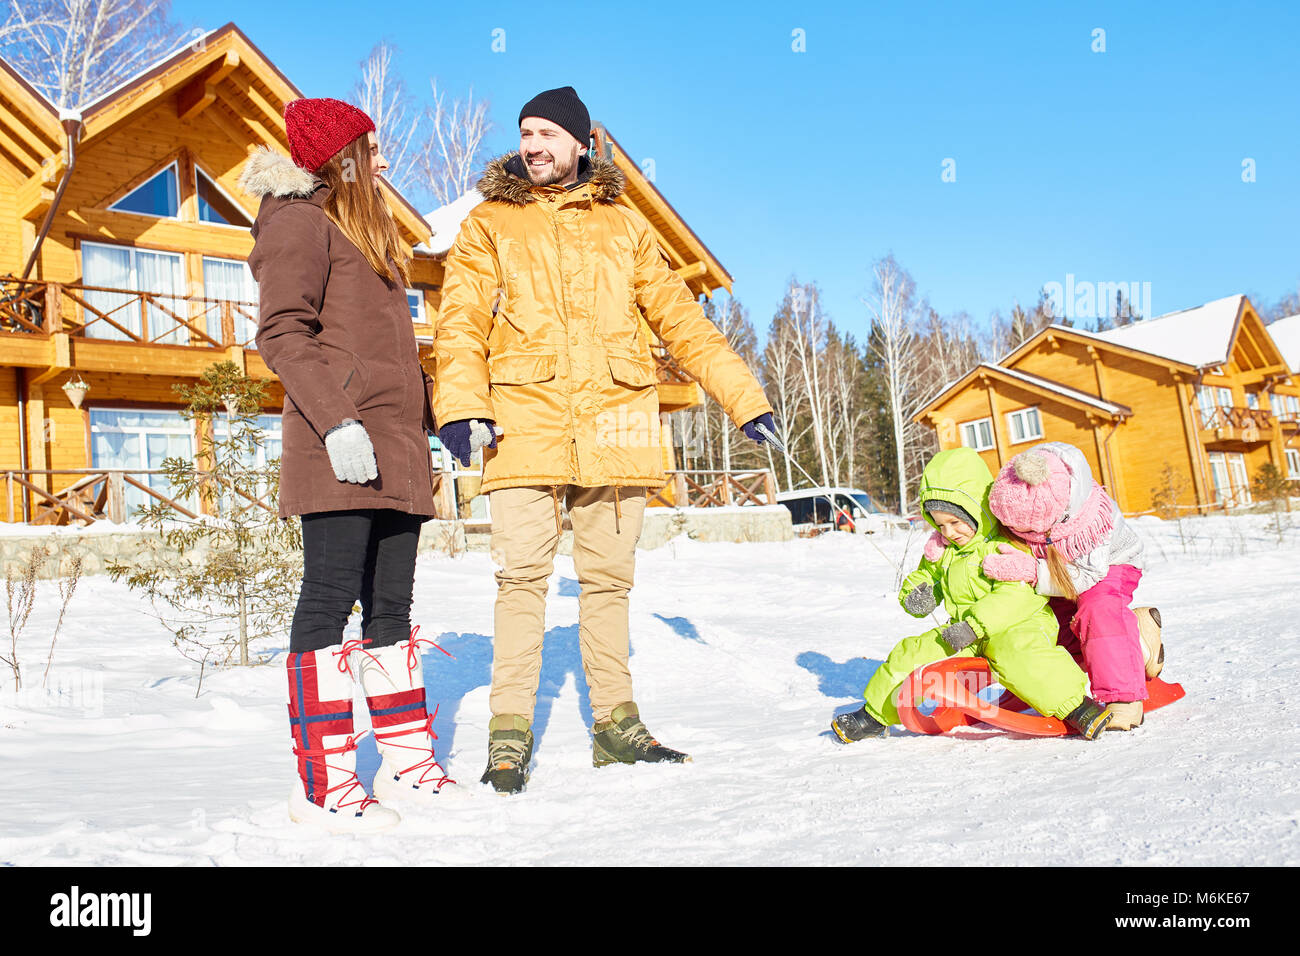 Active family on winter holidays - Stock Image